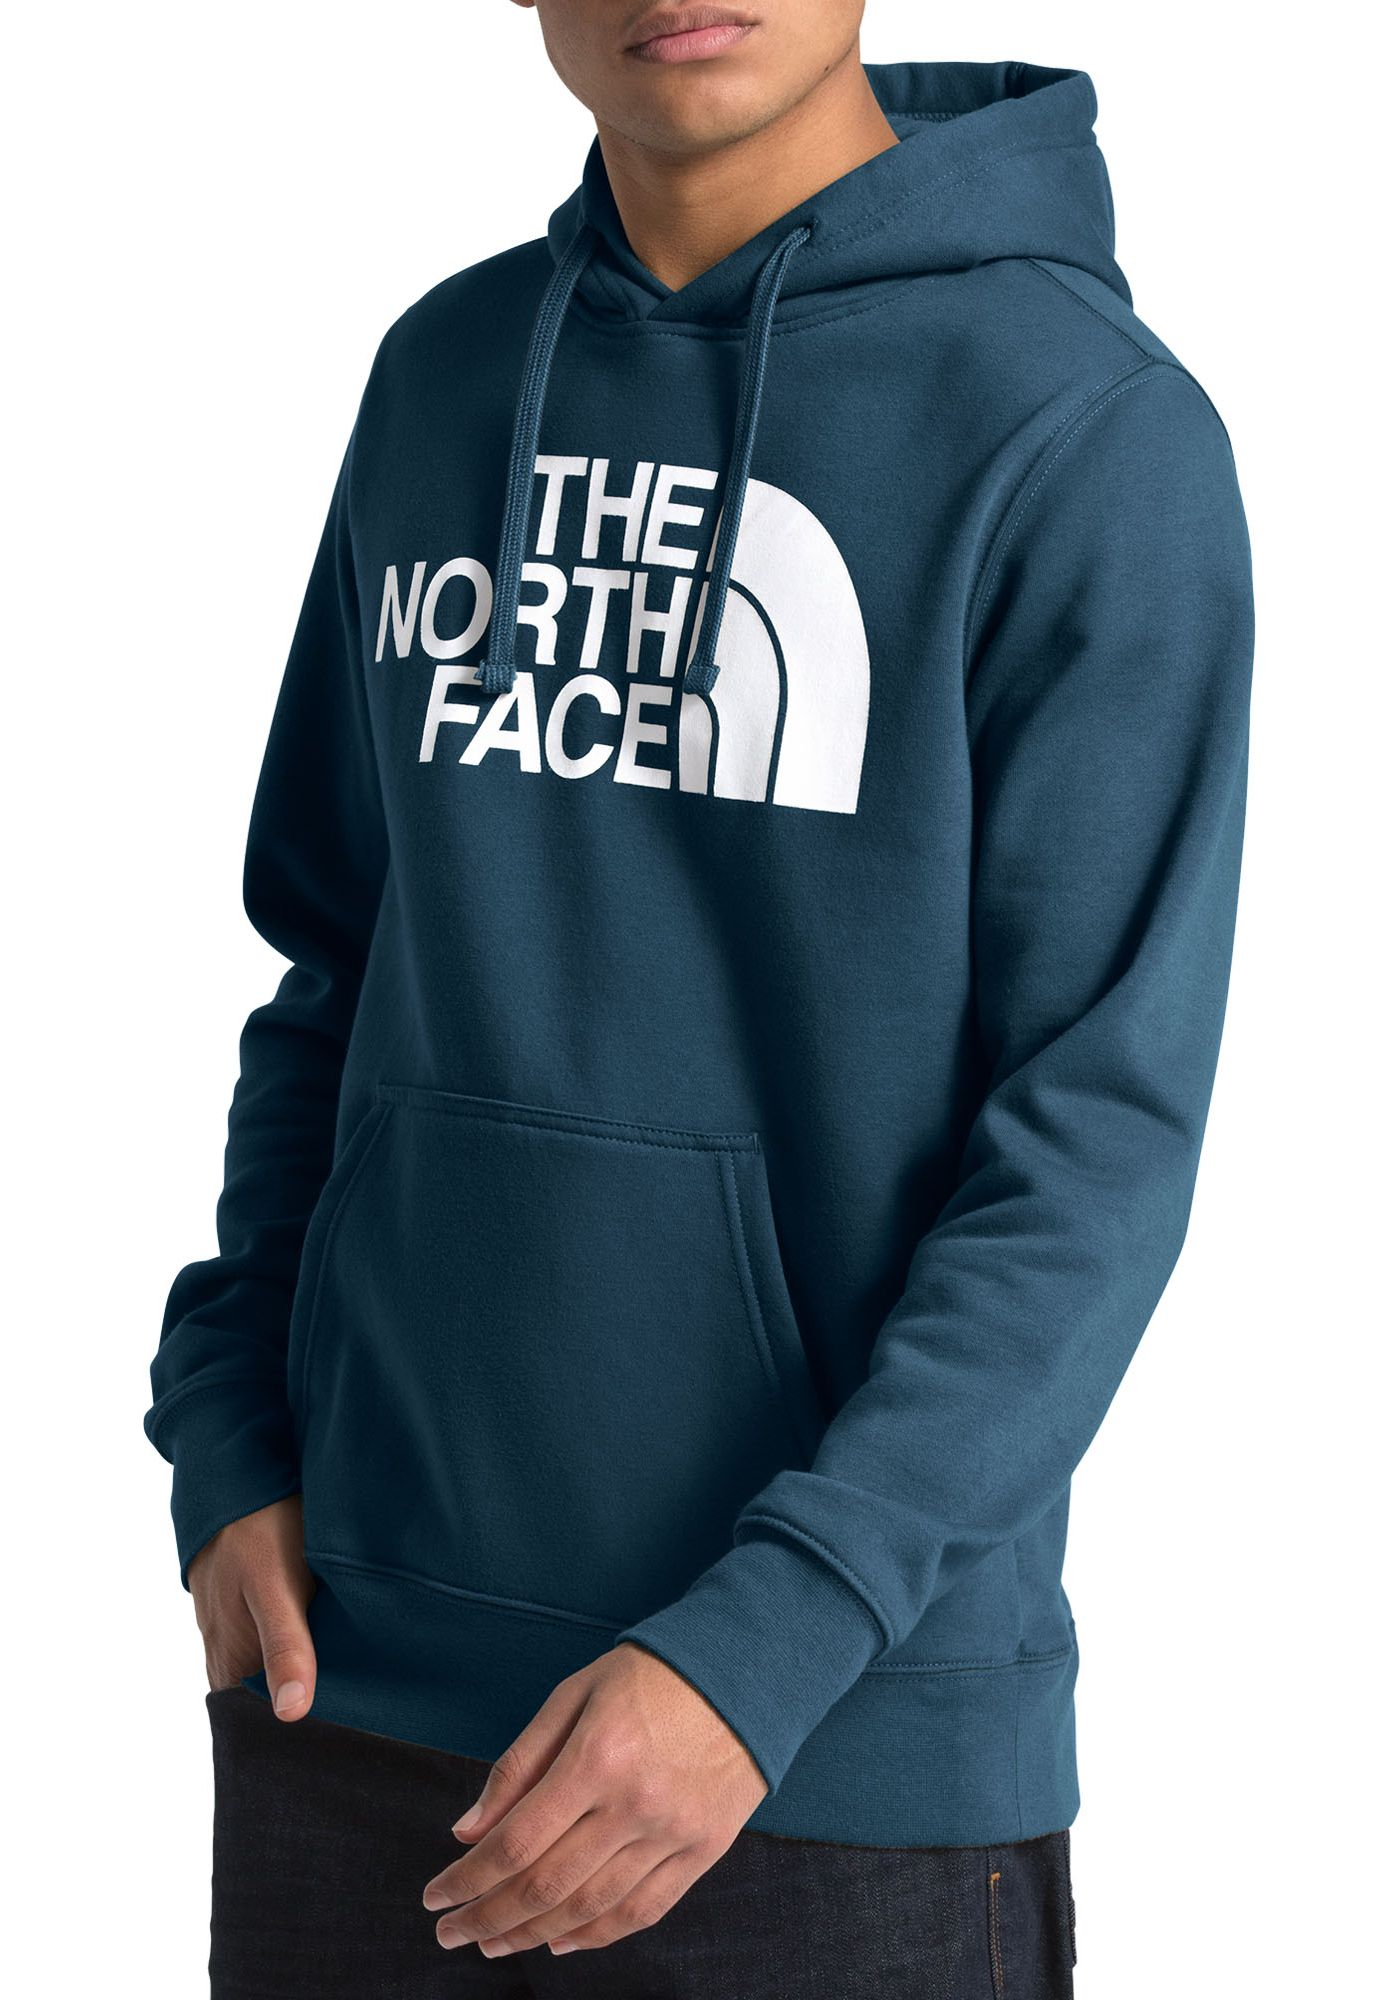 The North Face Men's Half Dome Fashion Hoodie